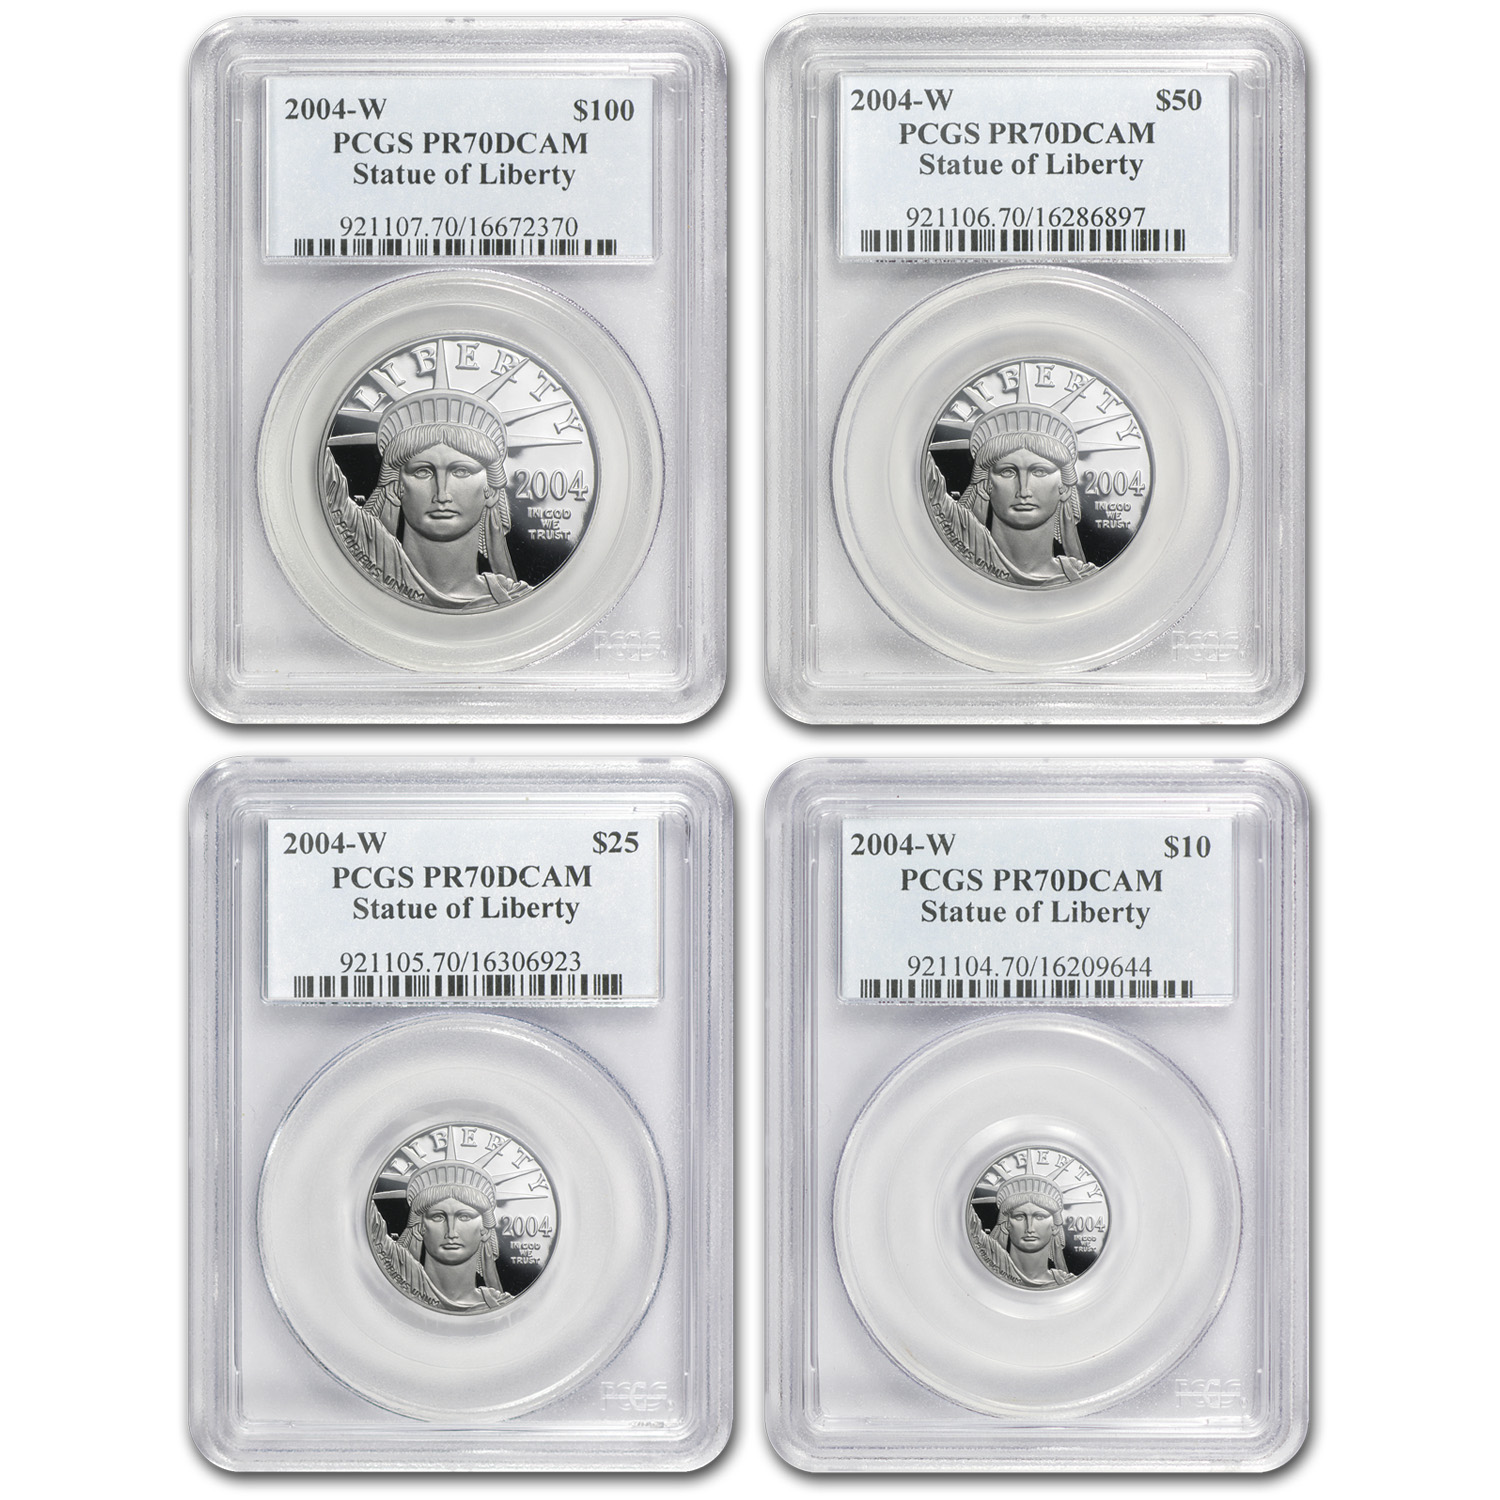 2004-W 4-Coin Proof Platinum American Eagle Set PR-70 PCGS